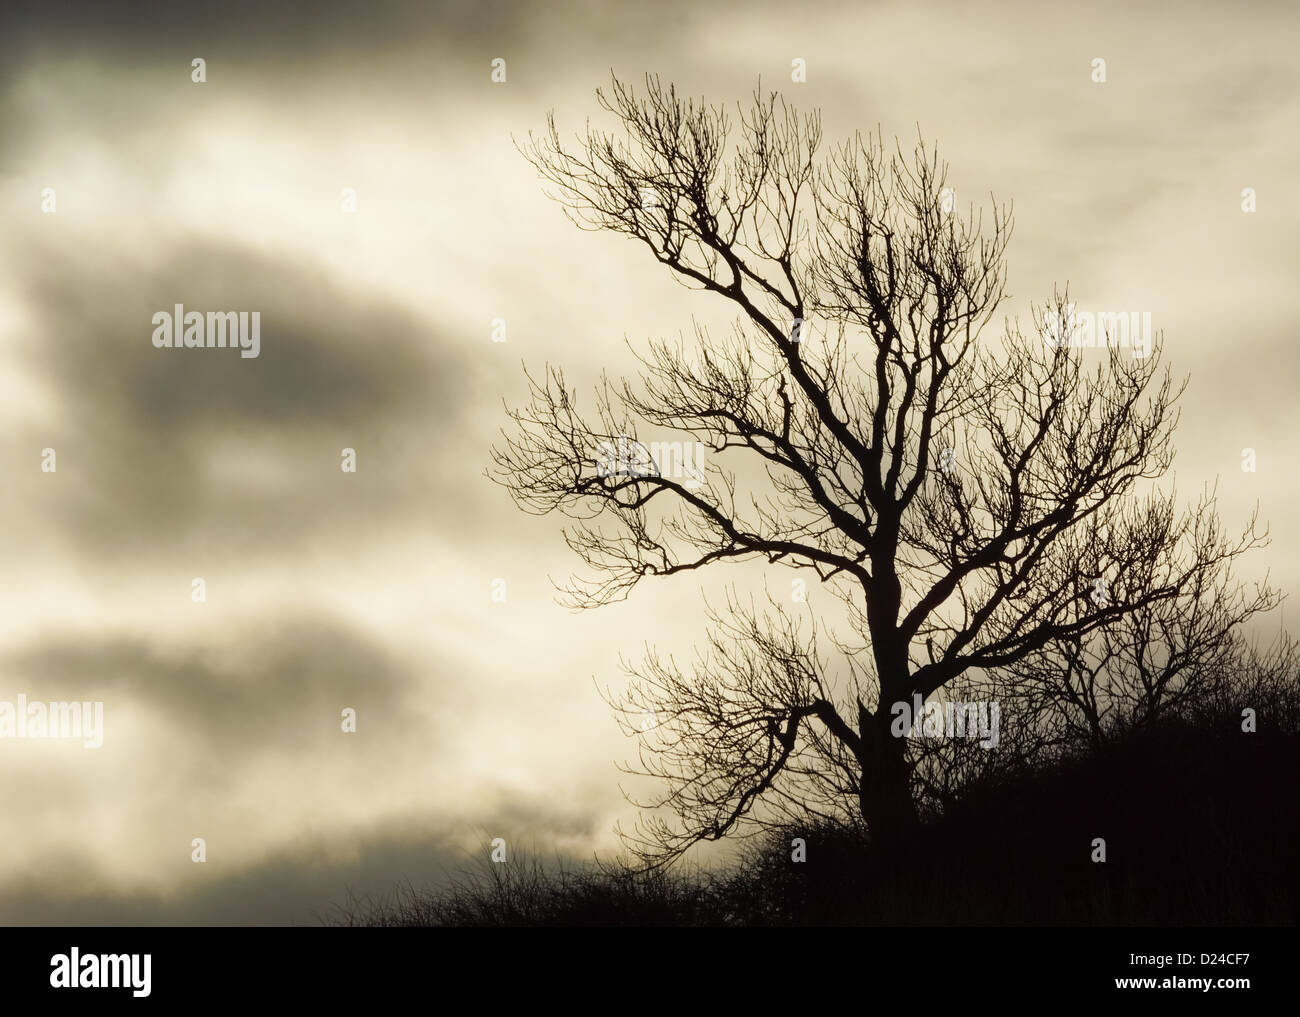 Silhouette Of A Tree Against An Overcast Sky - Stock Image